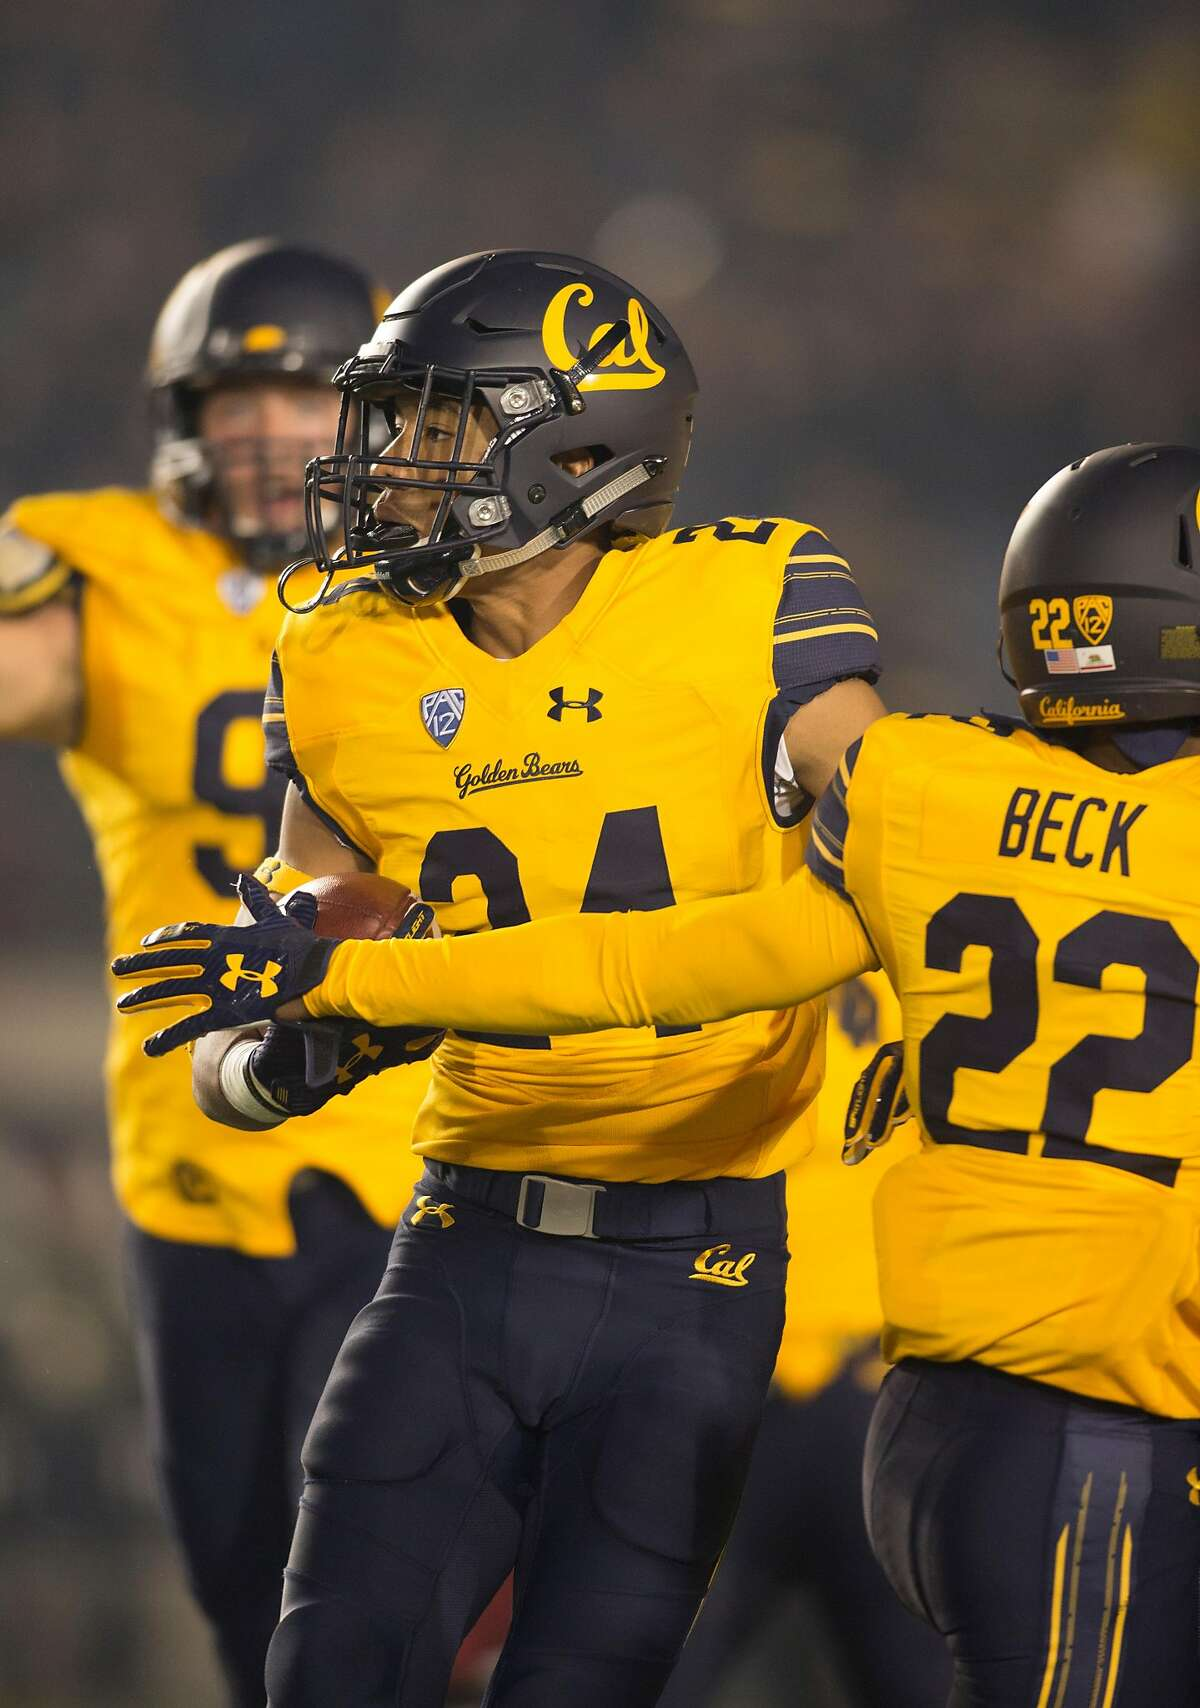 California's Camryn Bynum (24) celebrates his interception against Washington State during the first quarter of an NCAA college football game, Friday, Oct. 13, 2017, in Berkeley, Calif. (AP Photo/D. Ross Cameron)